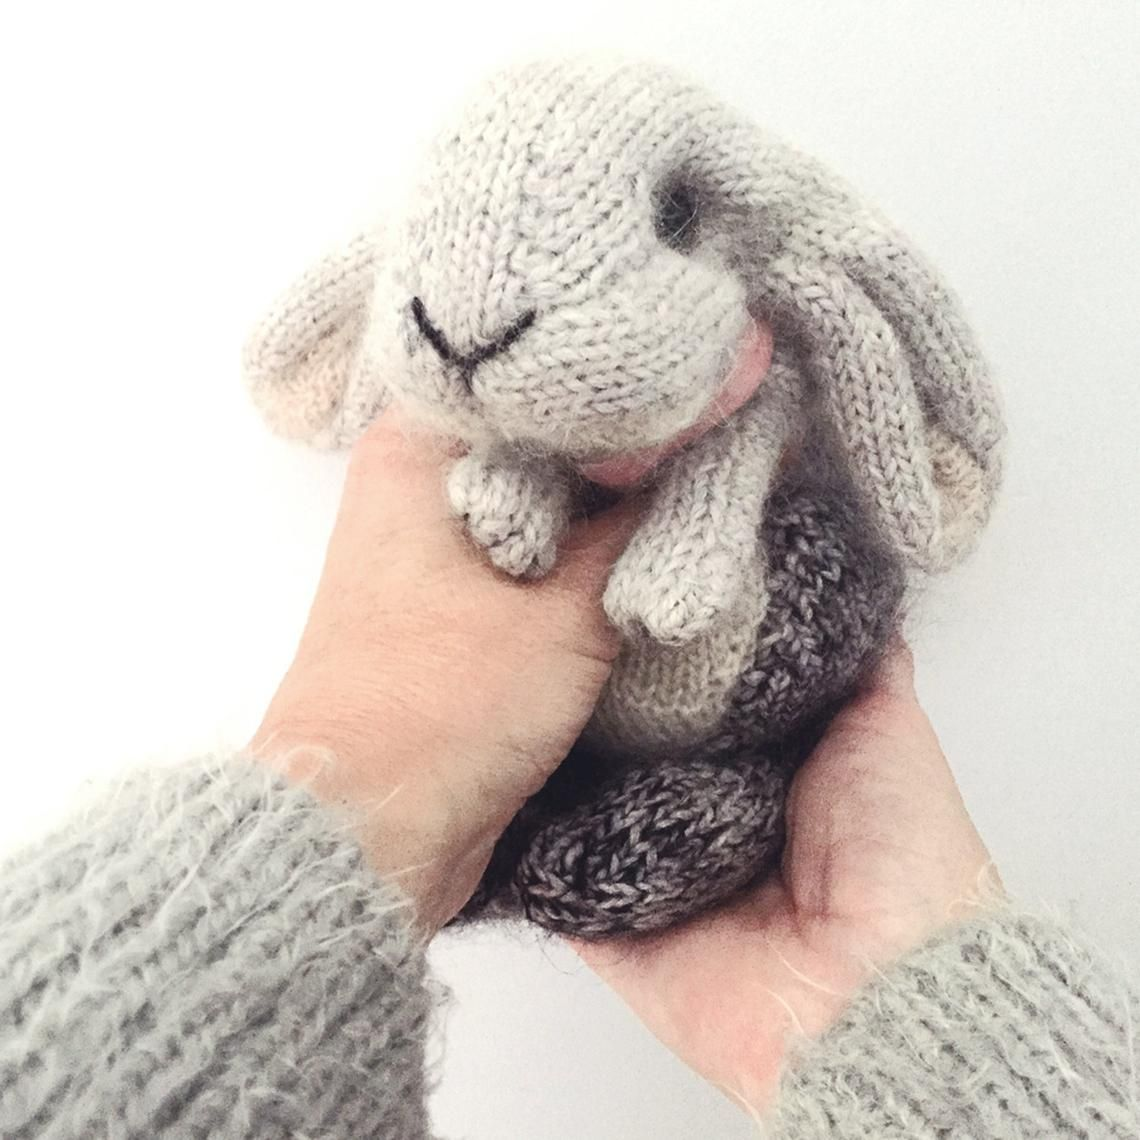 KNITTING PATTERN - Holland Lop Rabbit #knittingpatternstoys